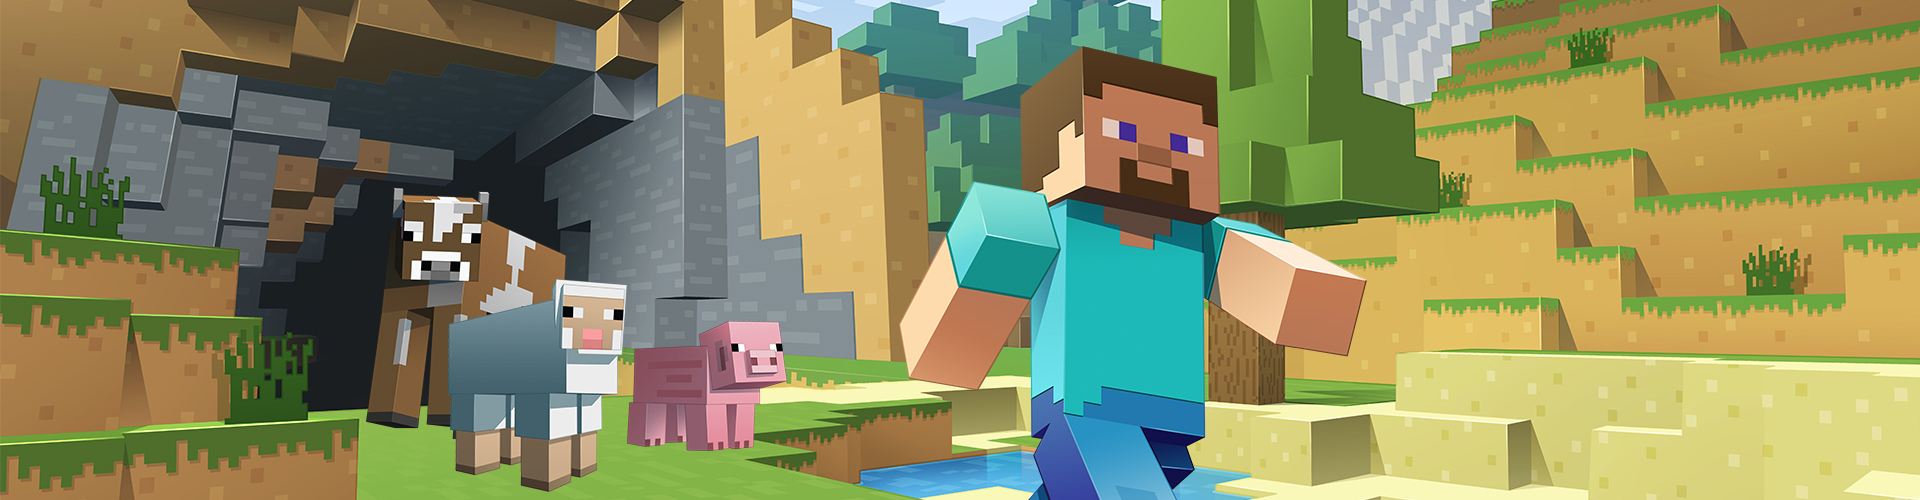 Minecraft game art illustration - Steve in a daytime scene with the cow, sheep, and pig behind him.